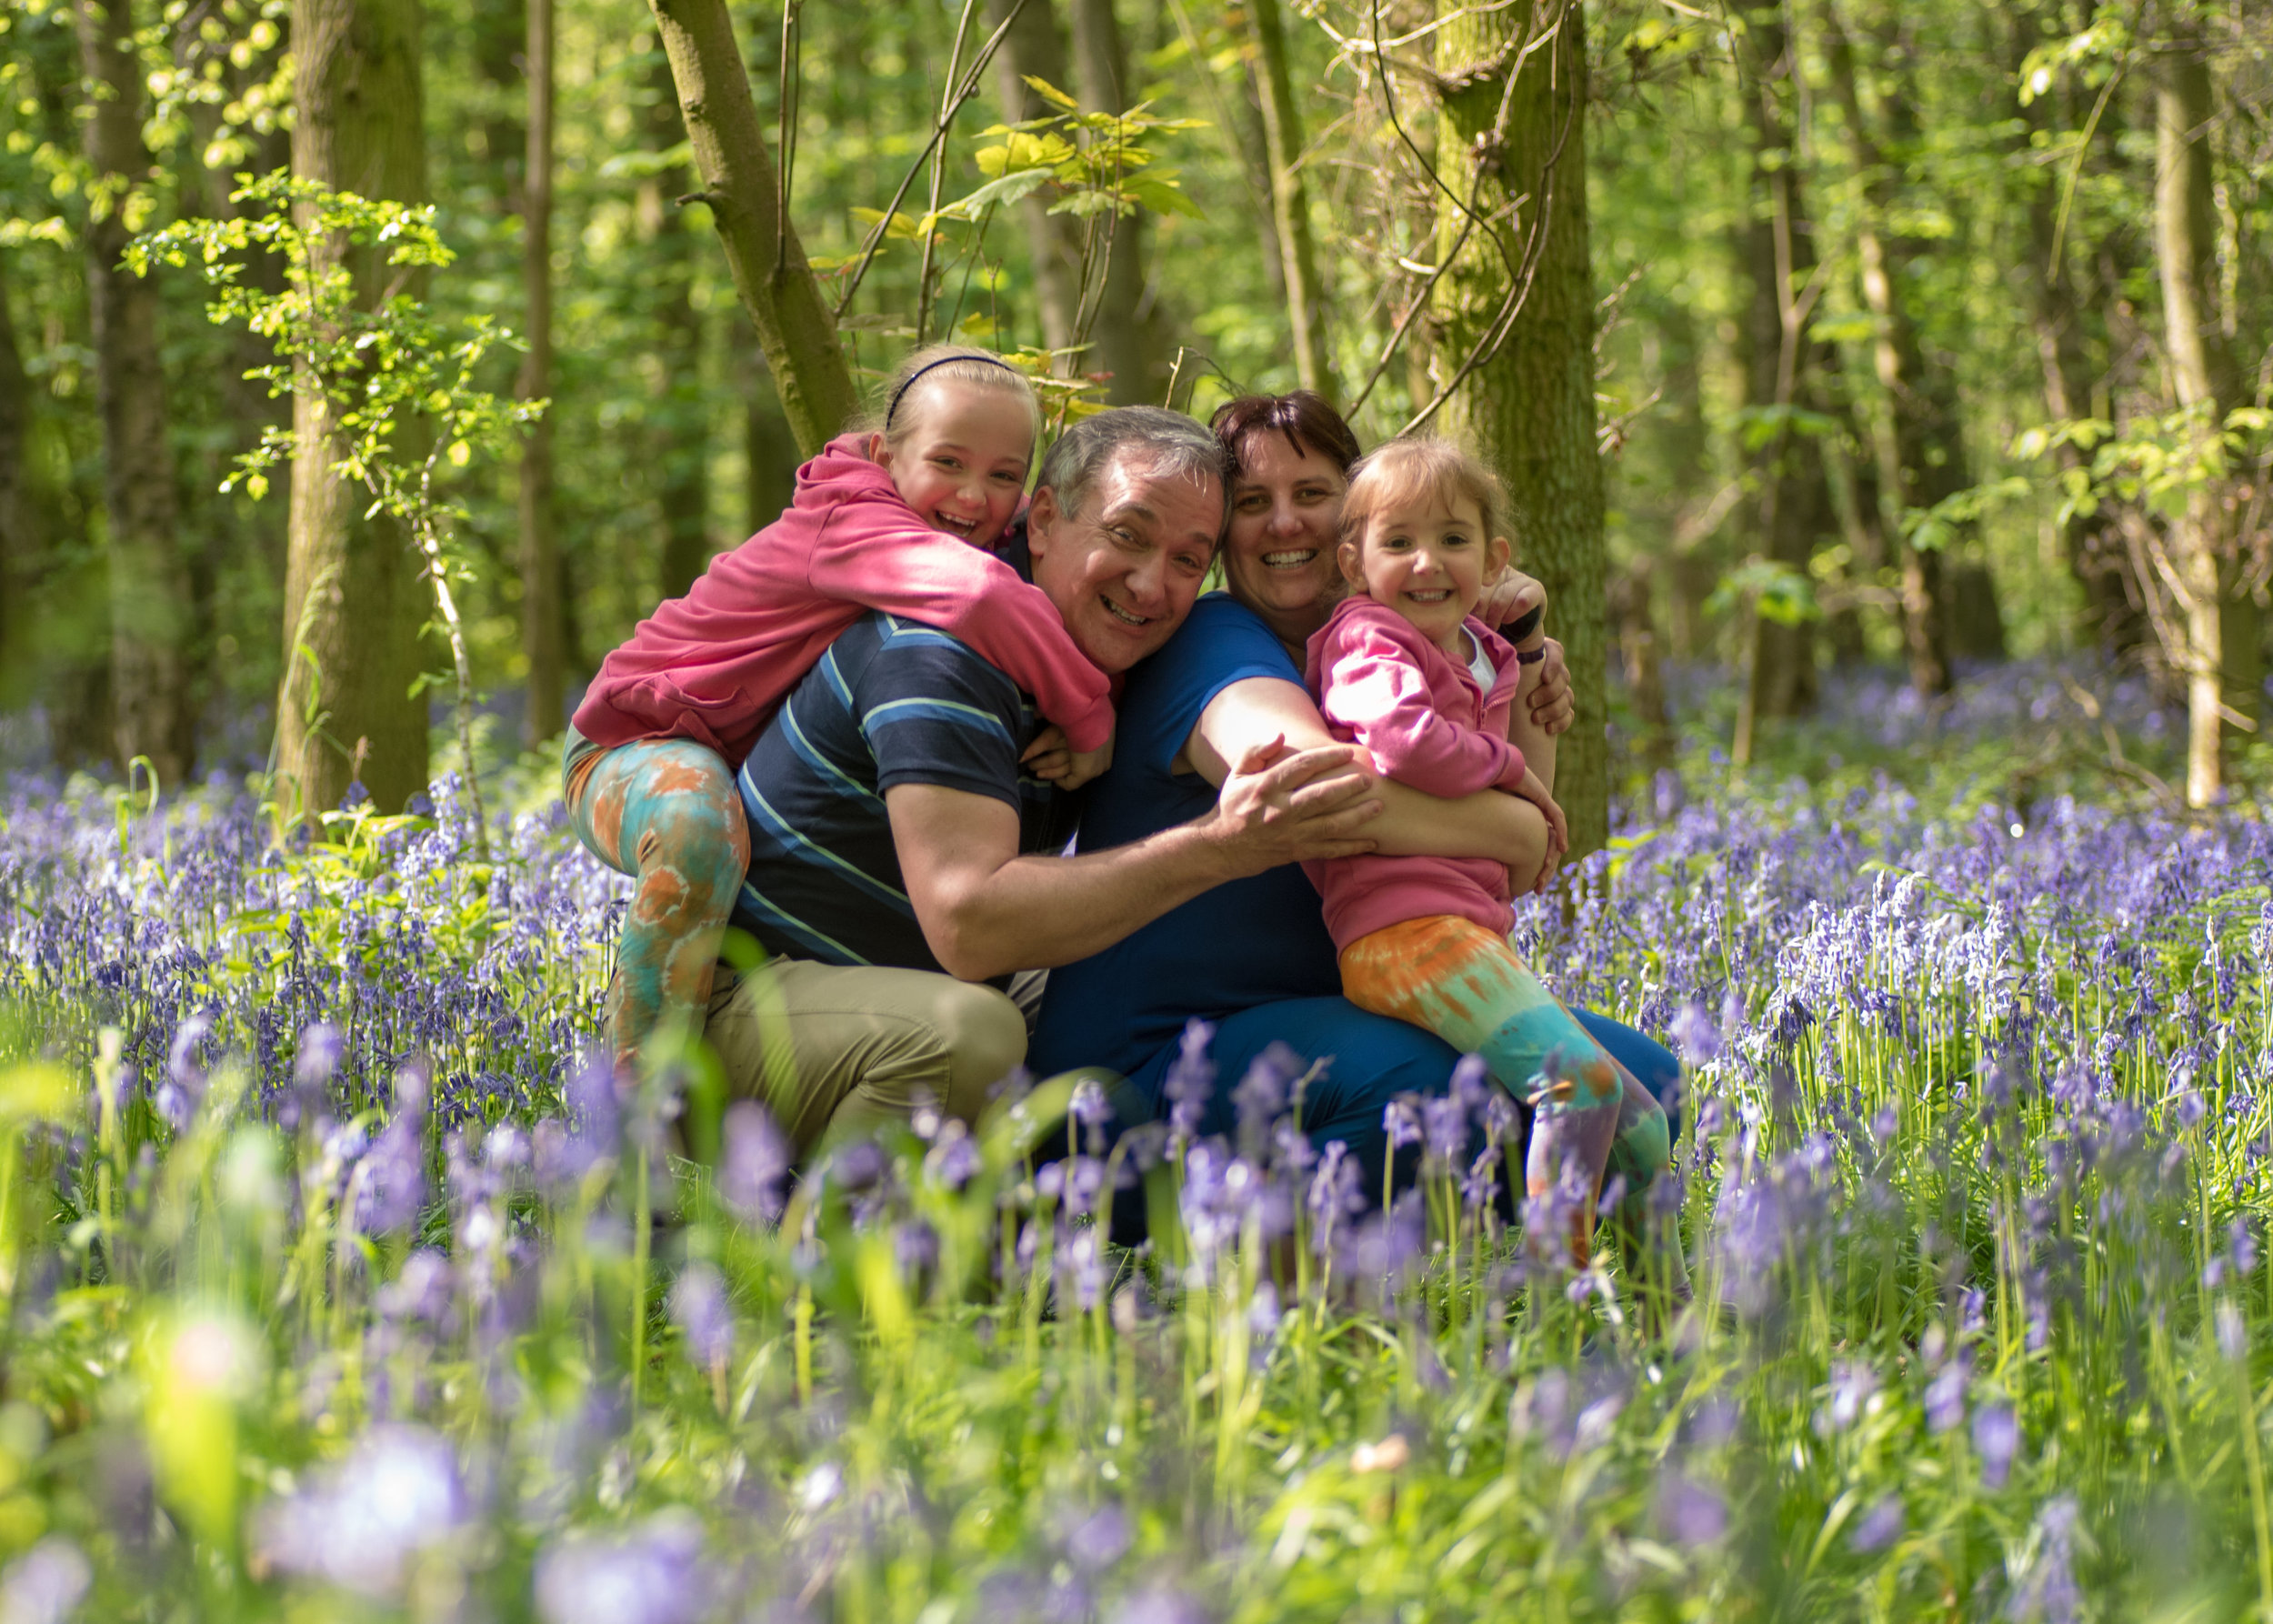 Wendy, here known as mum, used to pick bluebells for her Grandma when she was a kid. So this seemed like the perfect spot for her very own family photography session.     P.S. no bluebells were picked in the making of this photo.